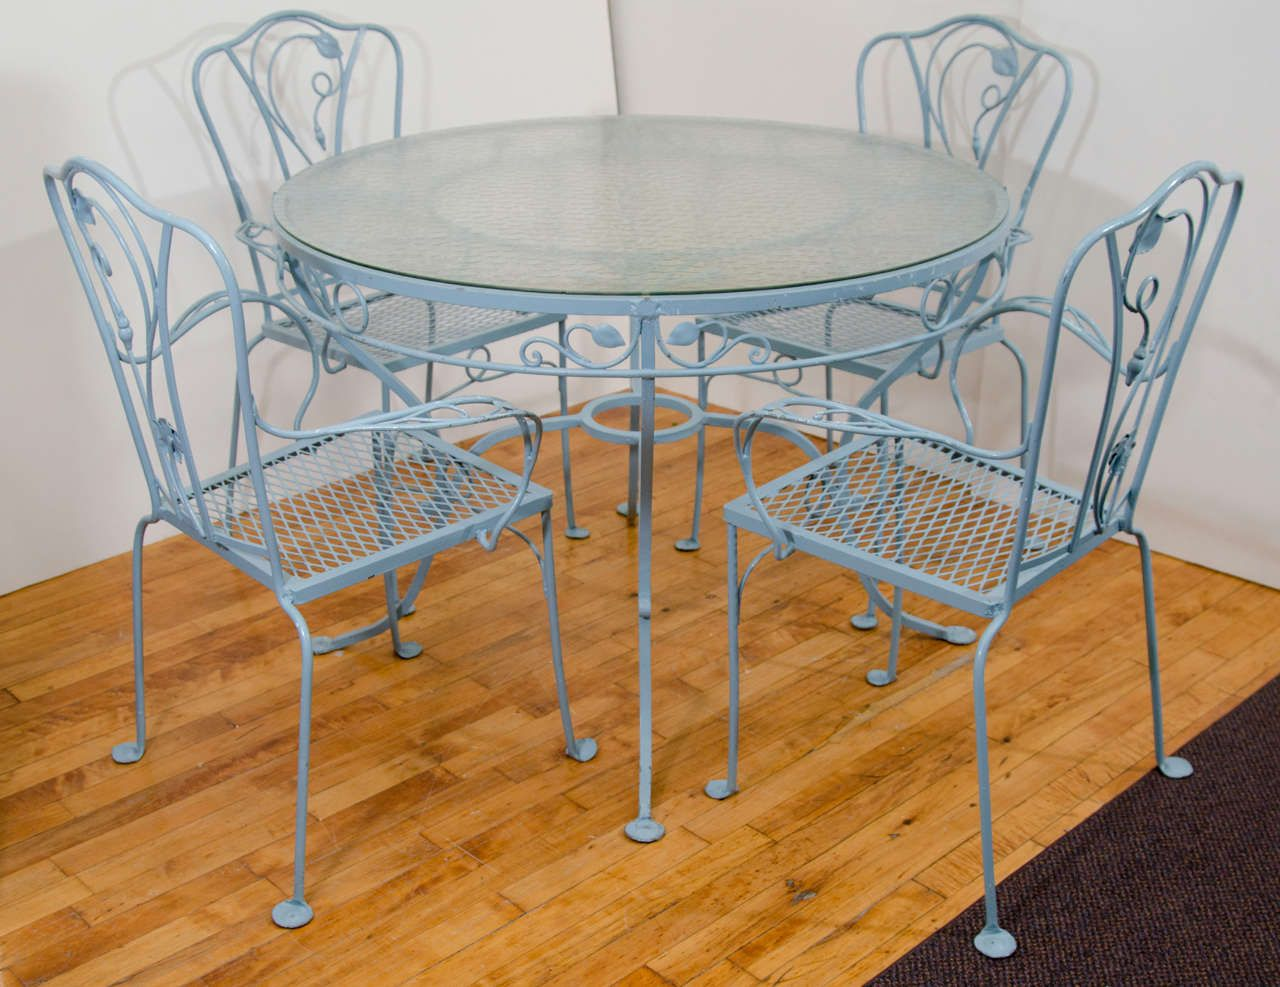 salterini wrought iron furniture. Vintage Salterini Wrought Iron Table And Chairs In Powder Blue Image 3 Furniture 1